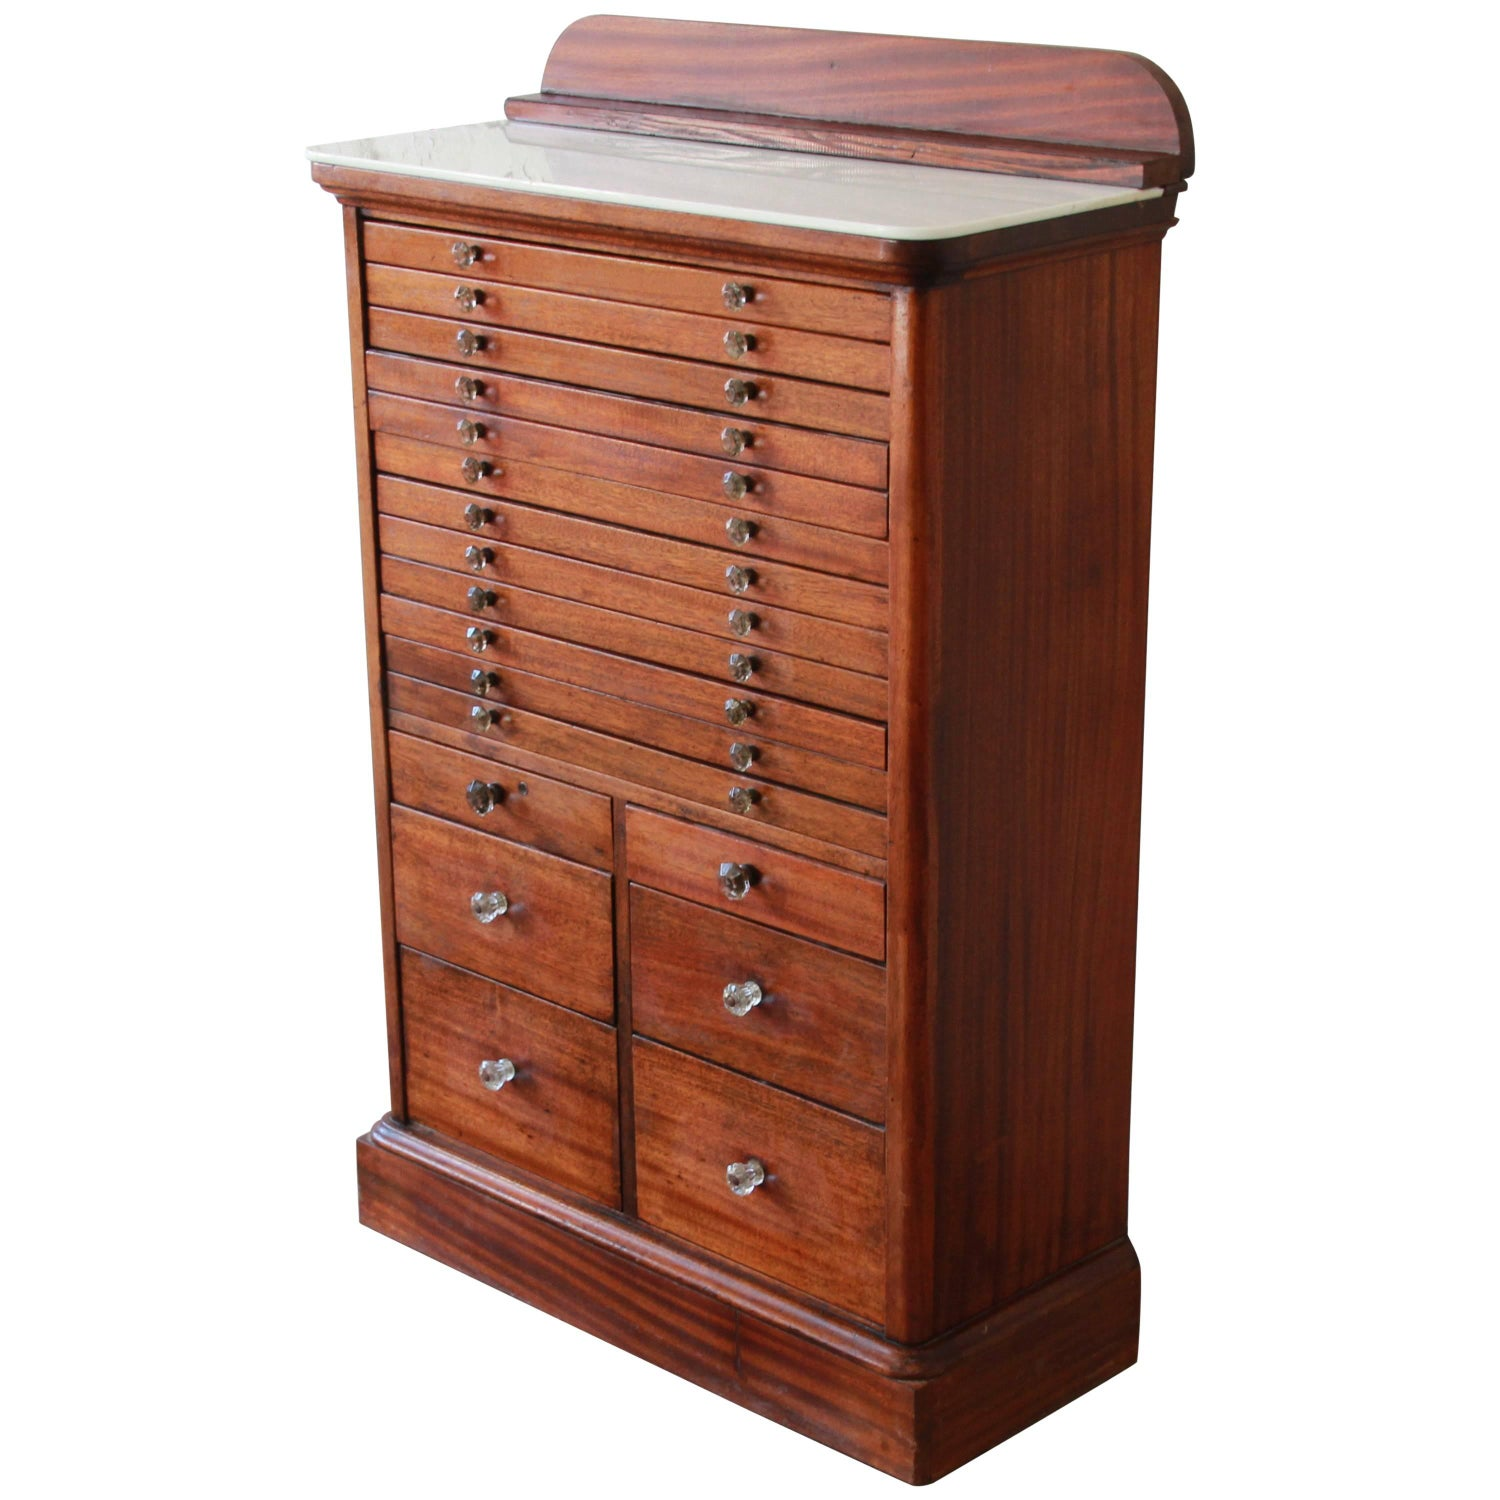 Antique Mahogany Dental Cabinet - Antique And Vintage Apothecary Cabinets - 202 For Sale At 1stdibs